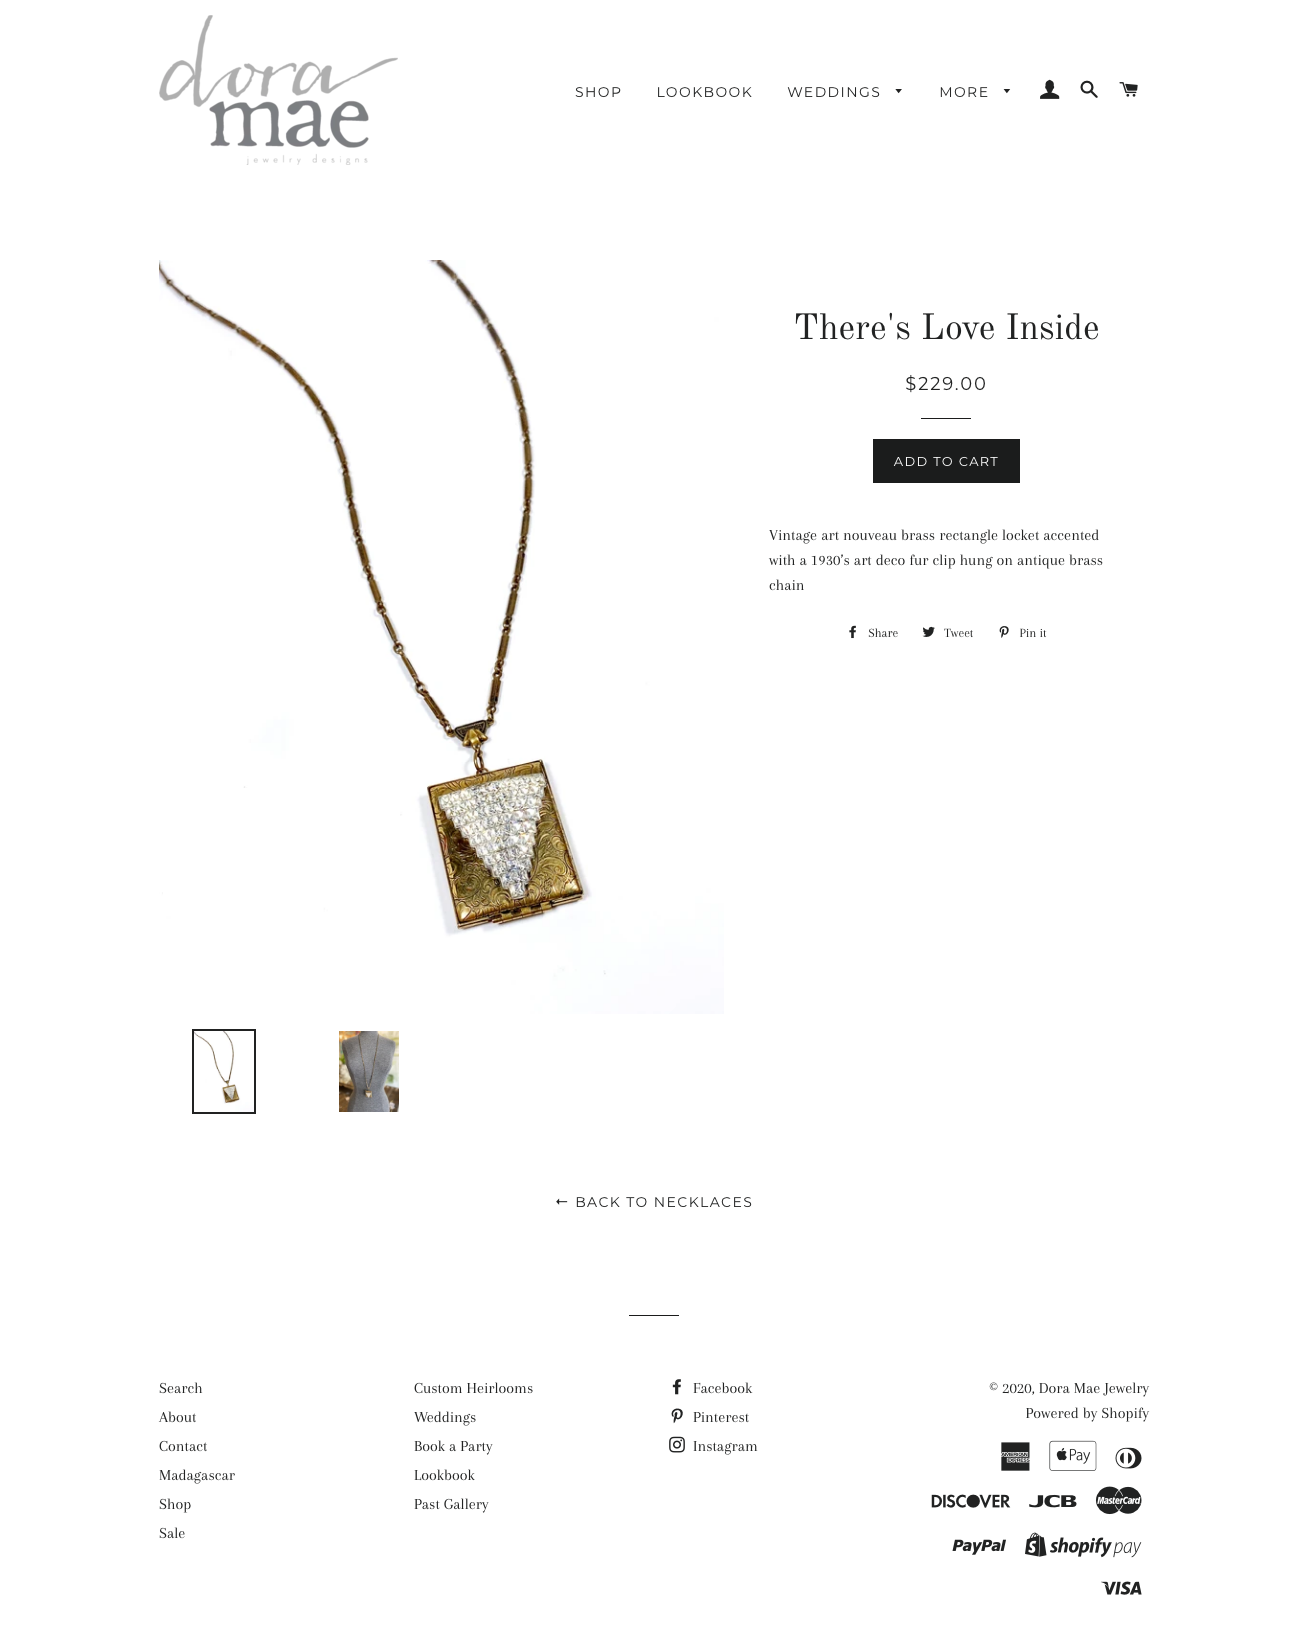 dora mae jewelry old website screenshot product page